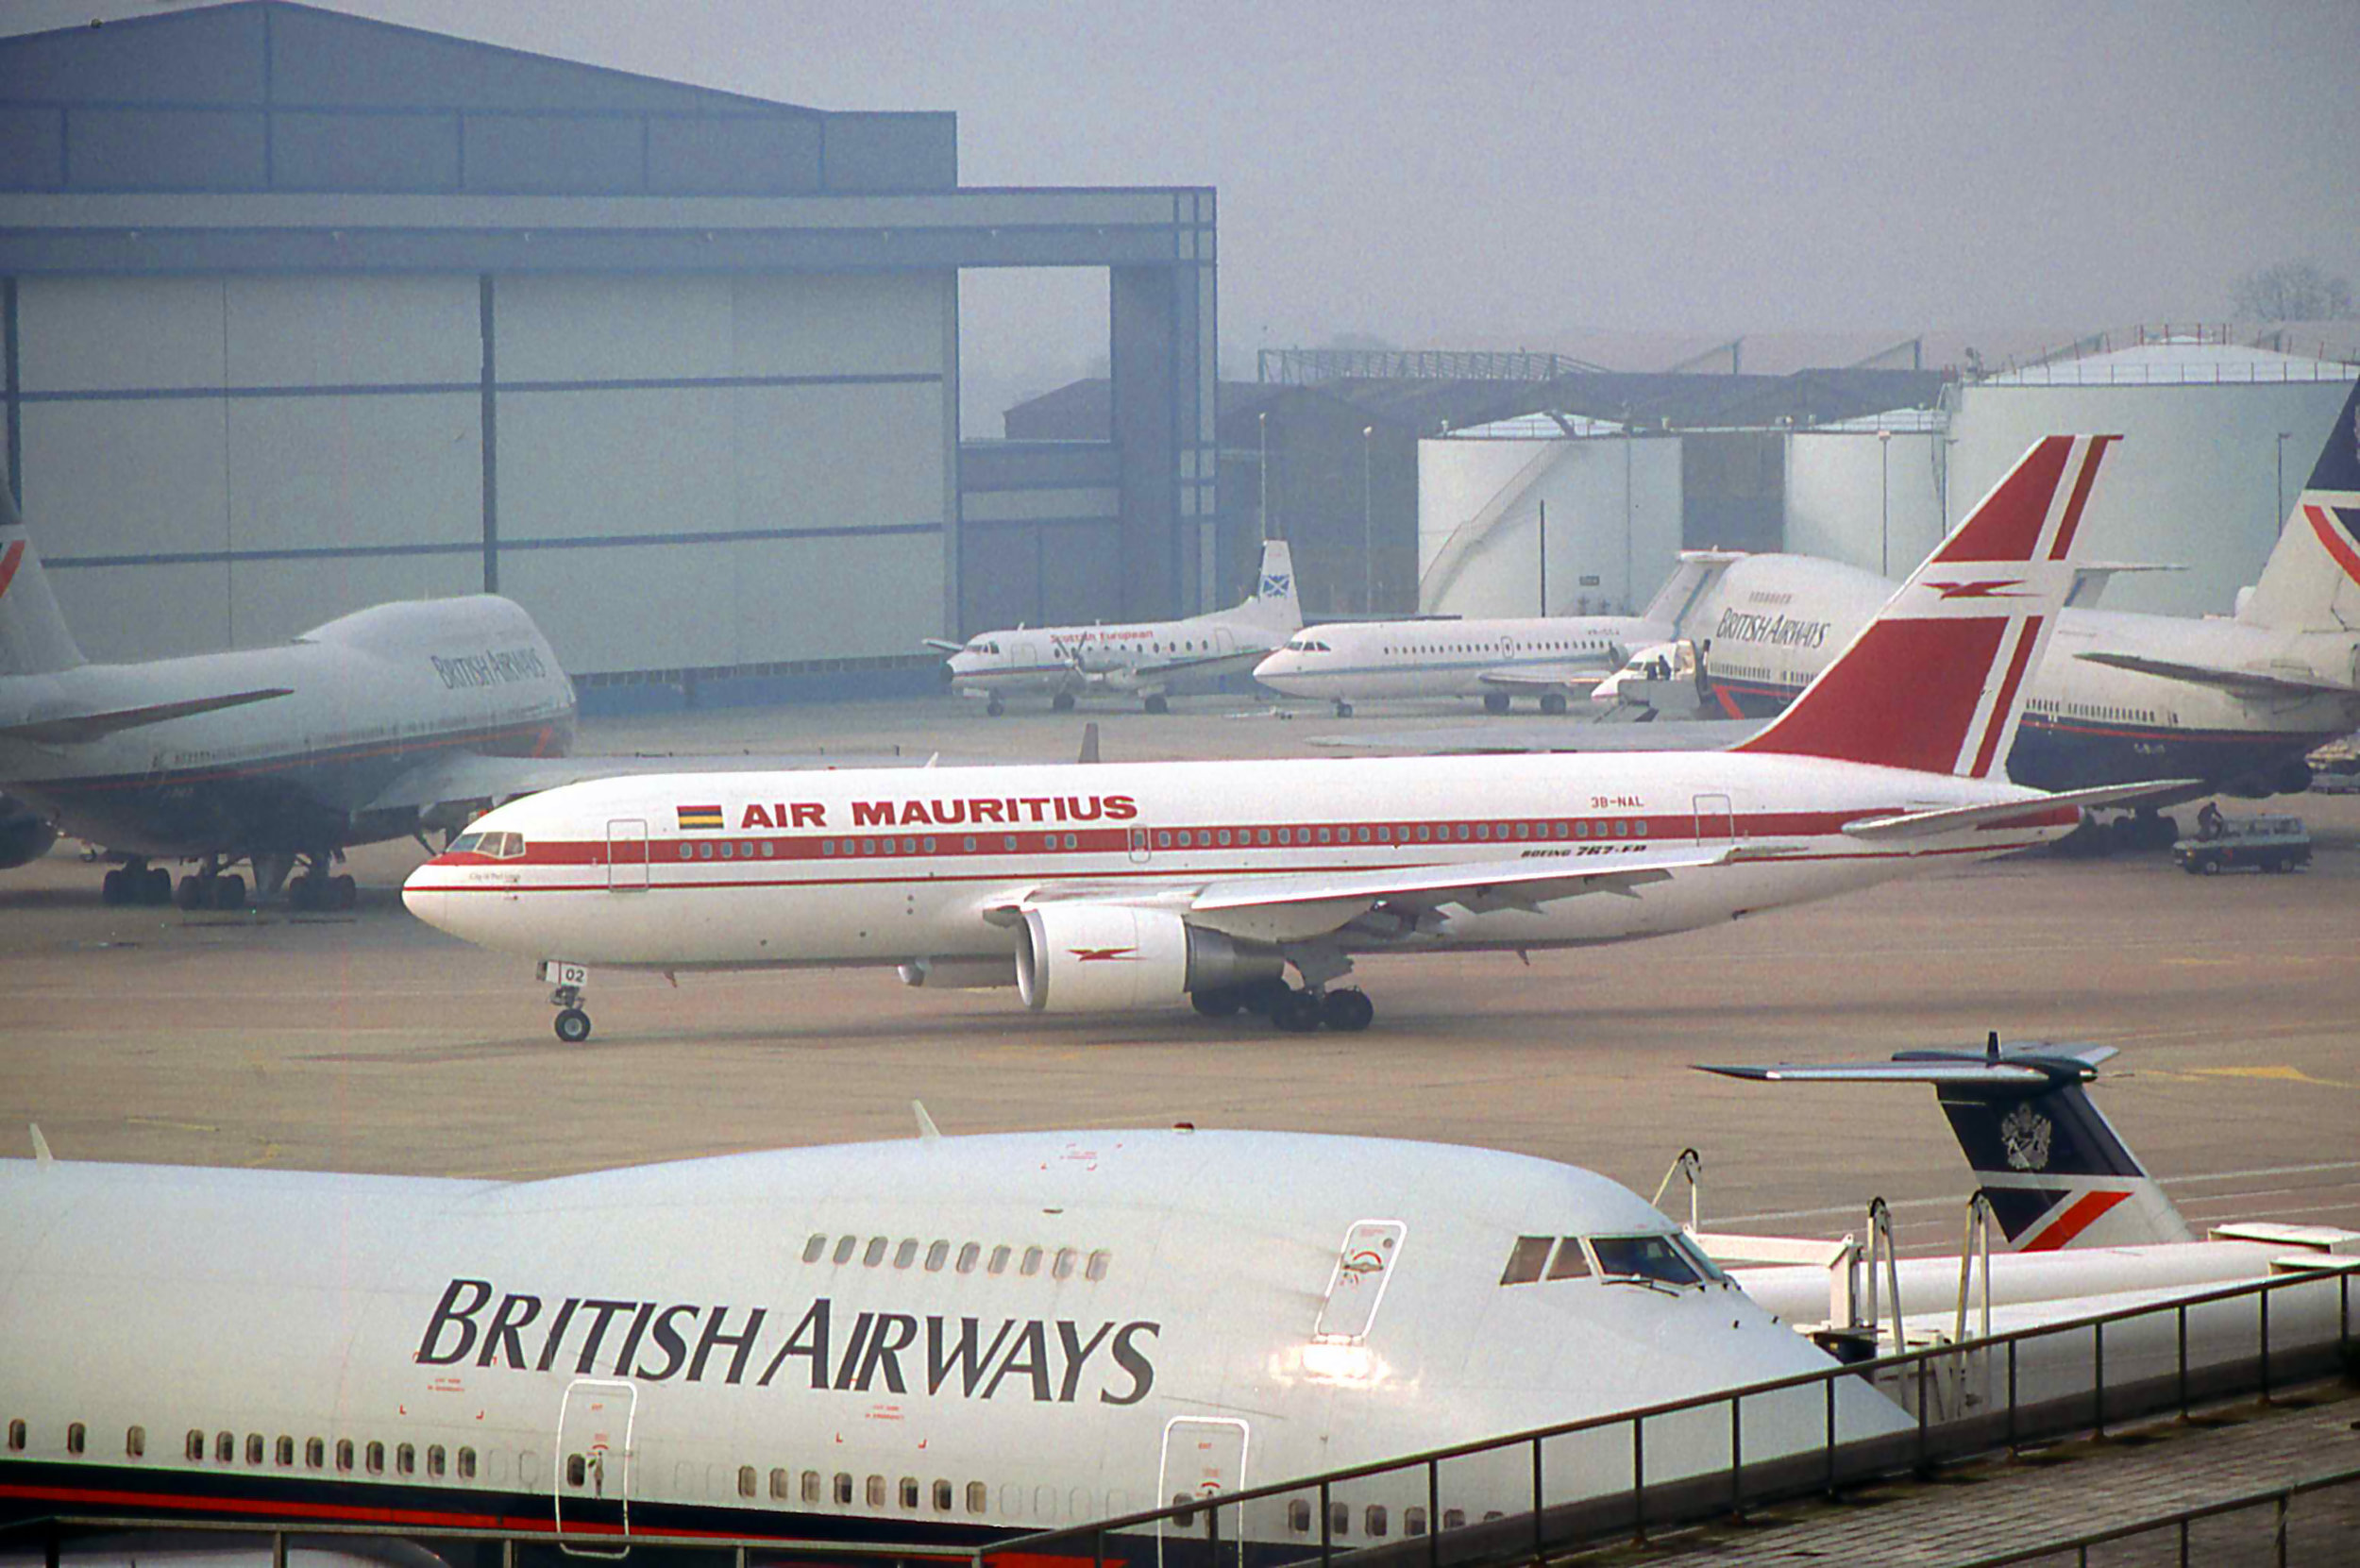 A few diversions from Heathrow on 1st April 1990 including Air Mauritius B767-300 3B-NAL. Photo Peter H